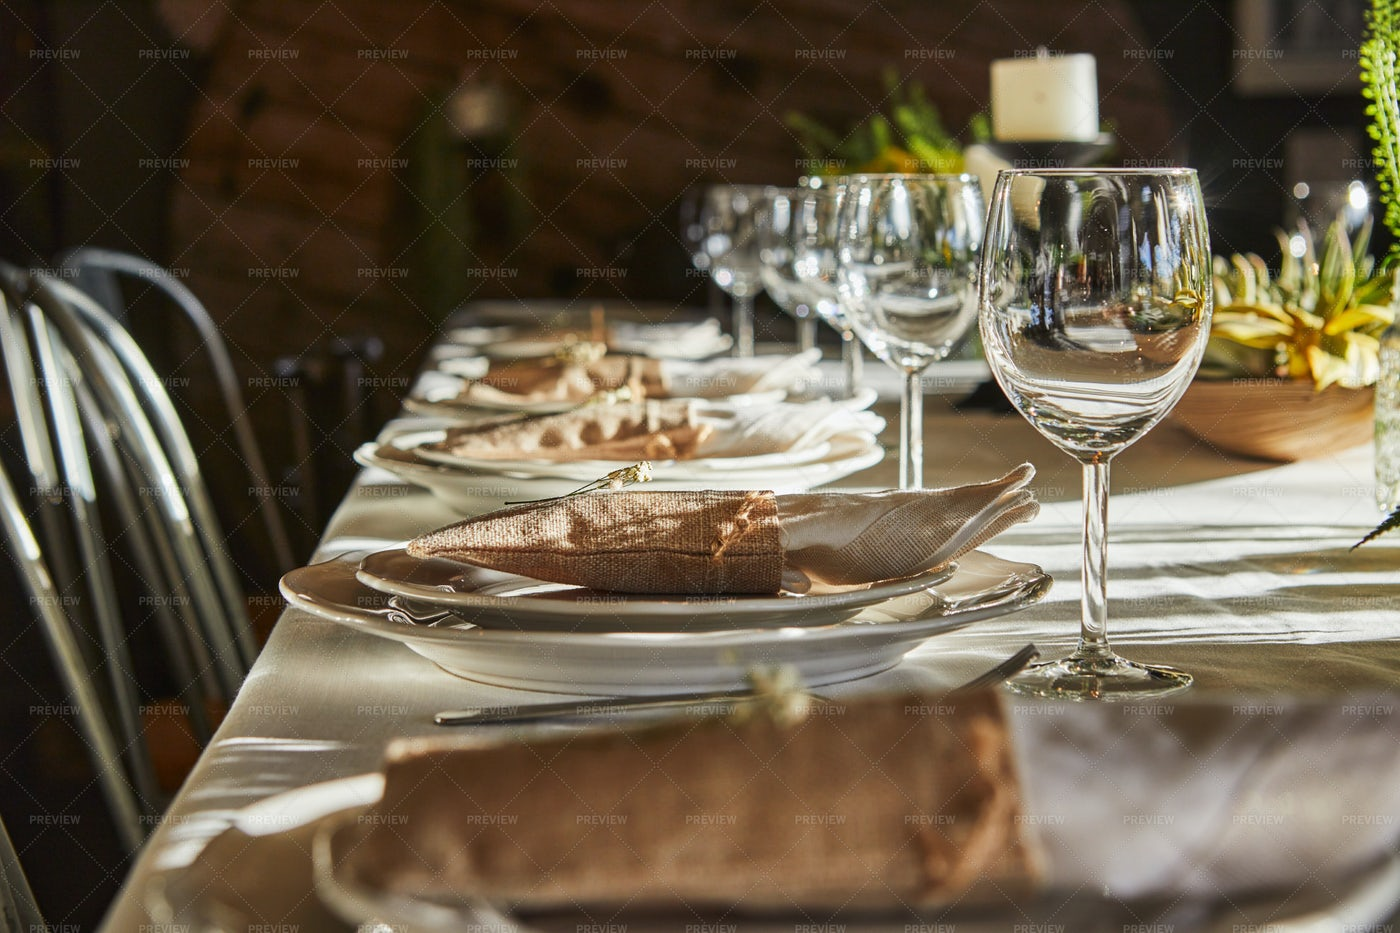 Rustic Dinner Table Setting: Stock Photos